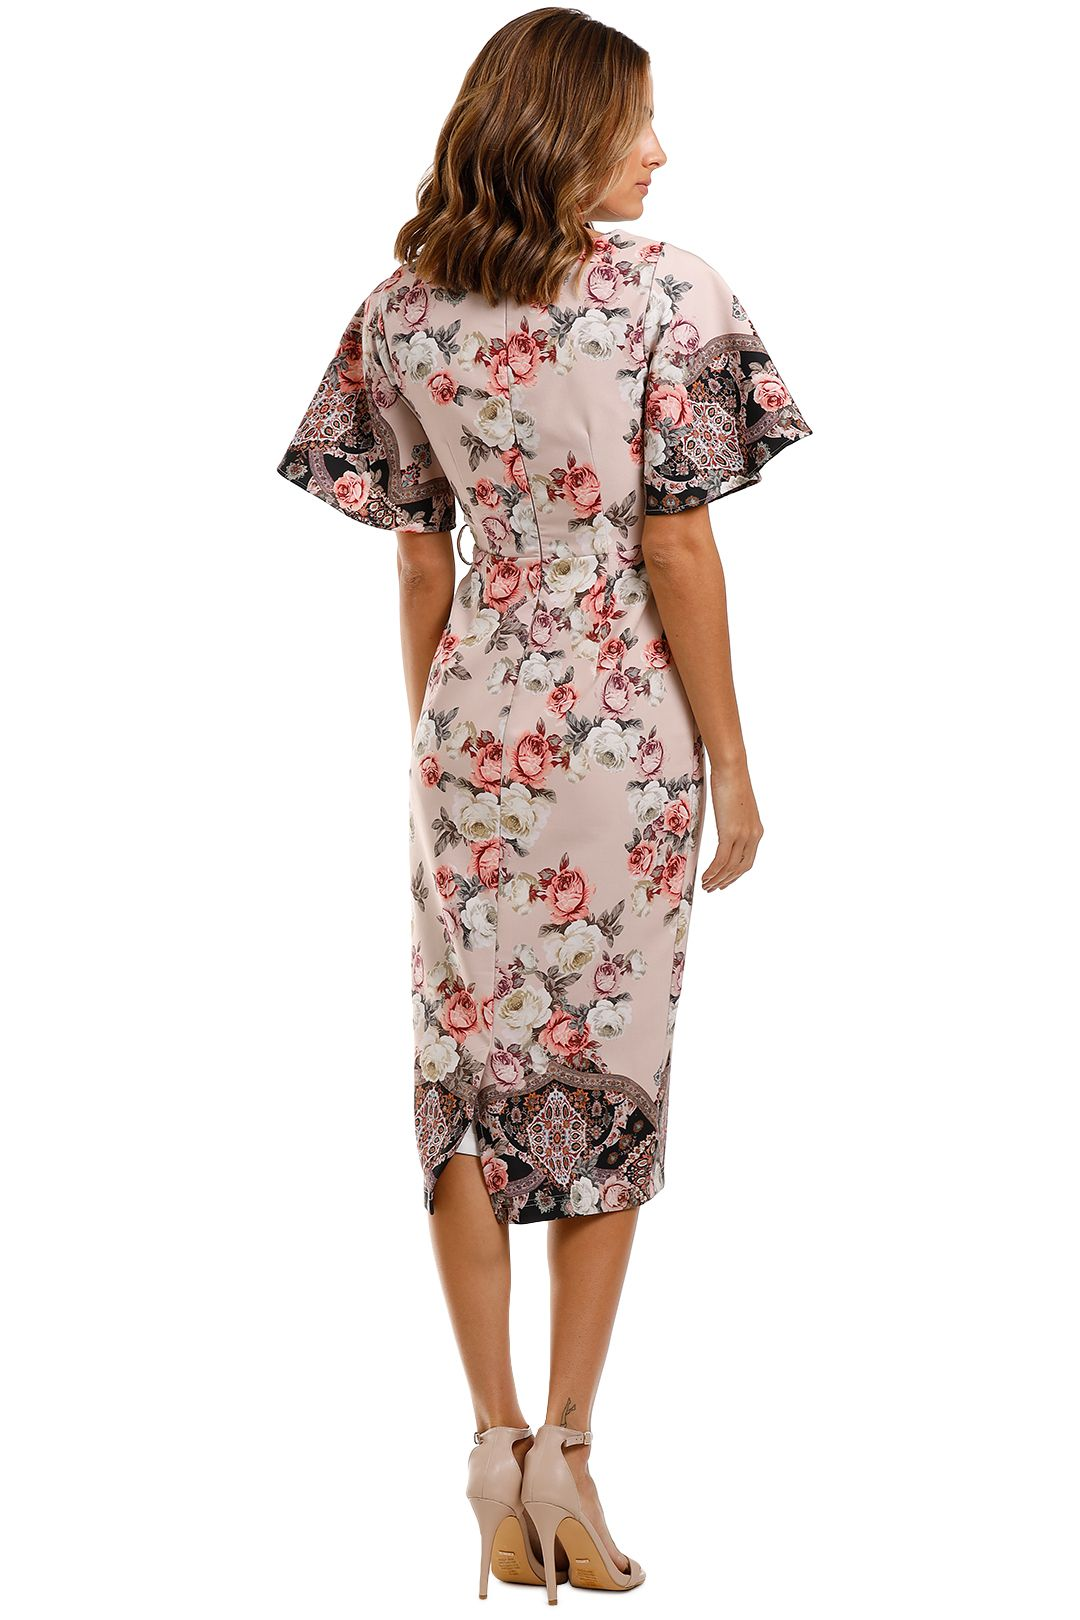 Pasduchas Chichi Sleeve Midi Dress Floral sweetheart neckline